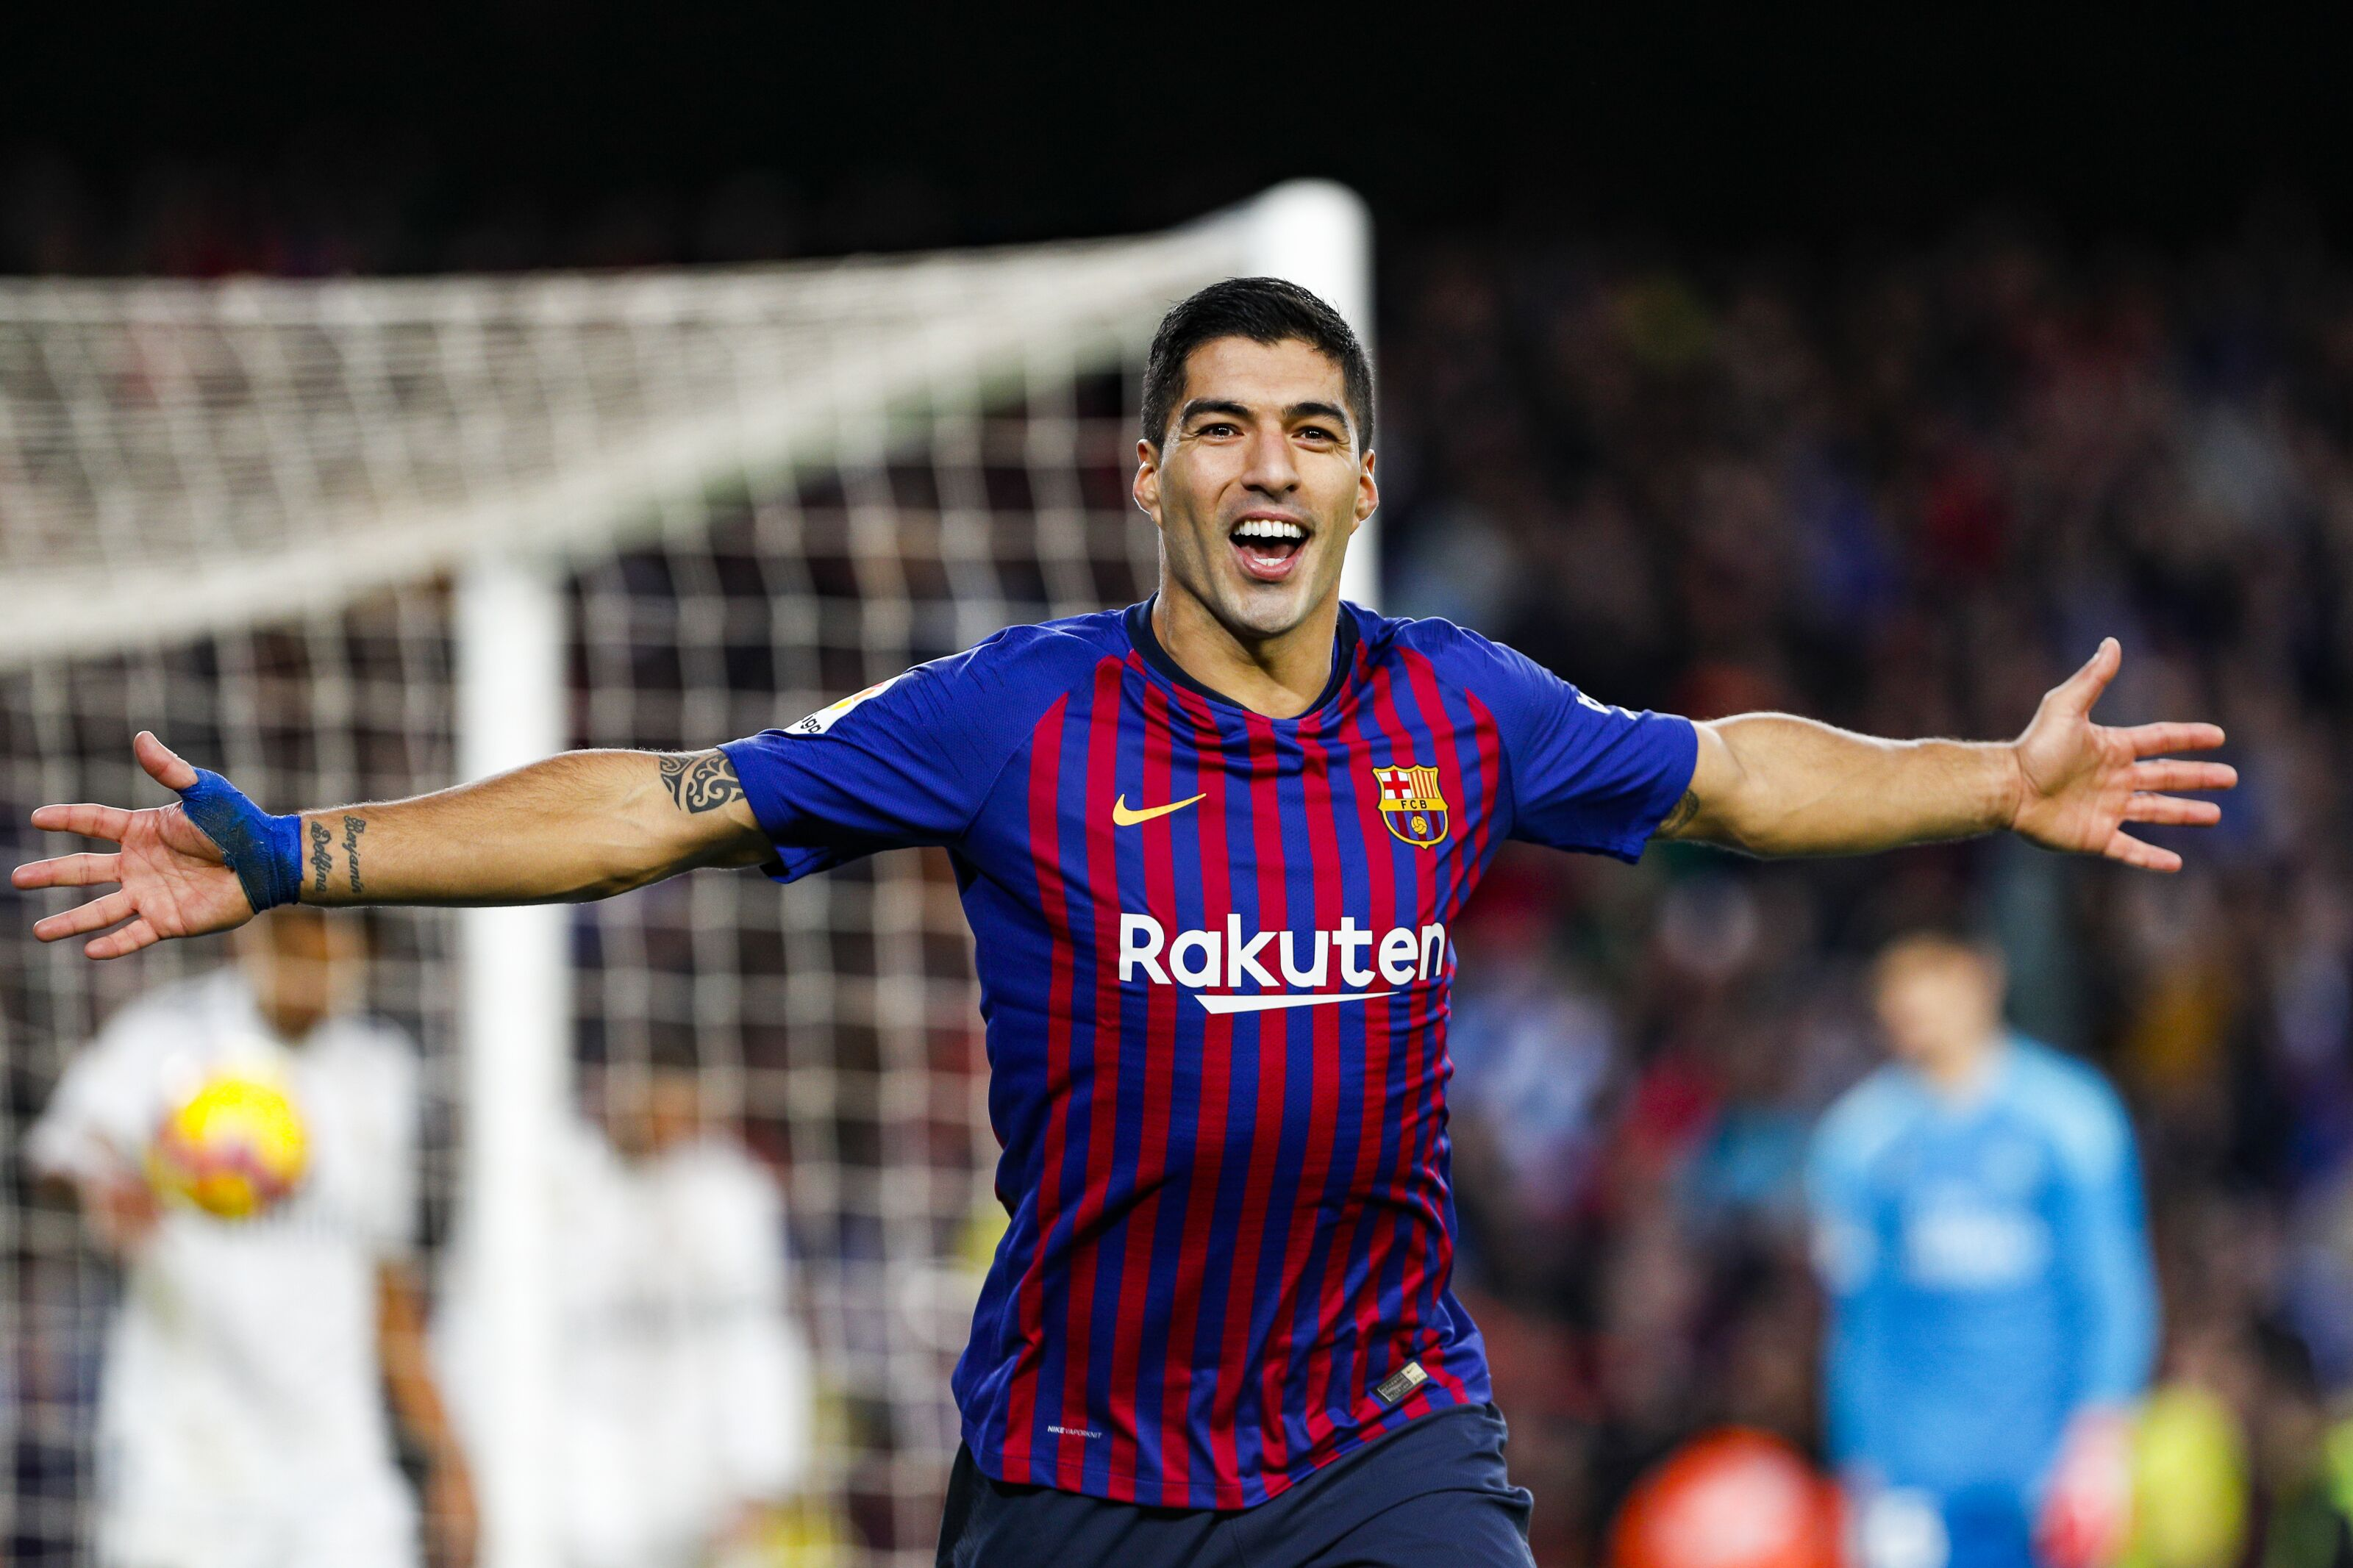 FC Barcelona forward Luis Suarez (9) celebrates scoring the goal during the match FC Barcelona against Real Madrid, for the round 10 of the Liga Santander, played at Camp Nou on 28th October 2018 in Barcelona, Spain. (Photo by Mikel Trigueros/Urbanandsport/ NurPhoto via Getty Images)